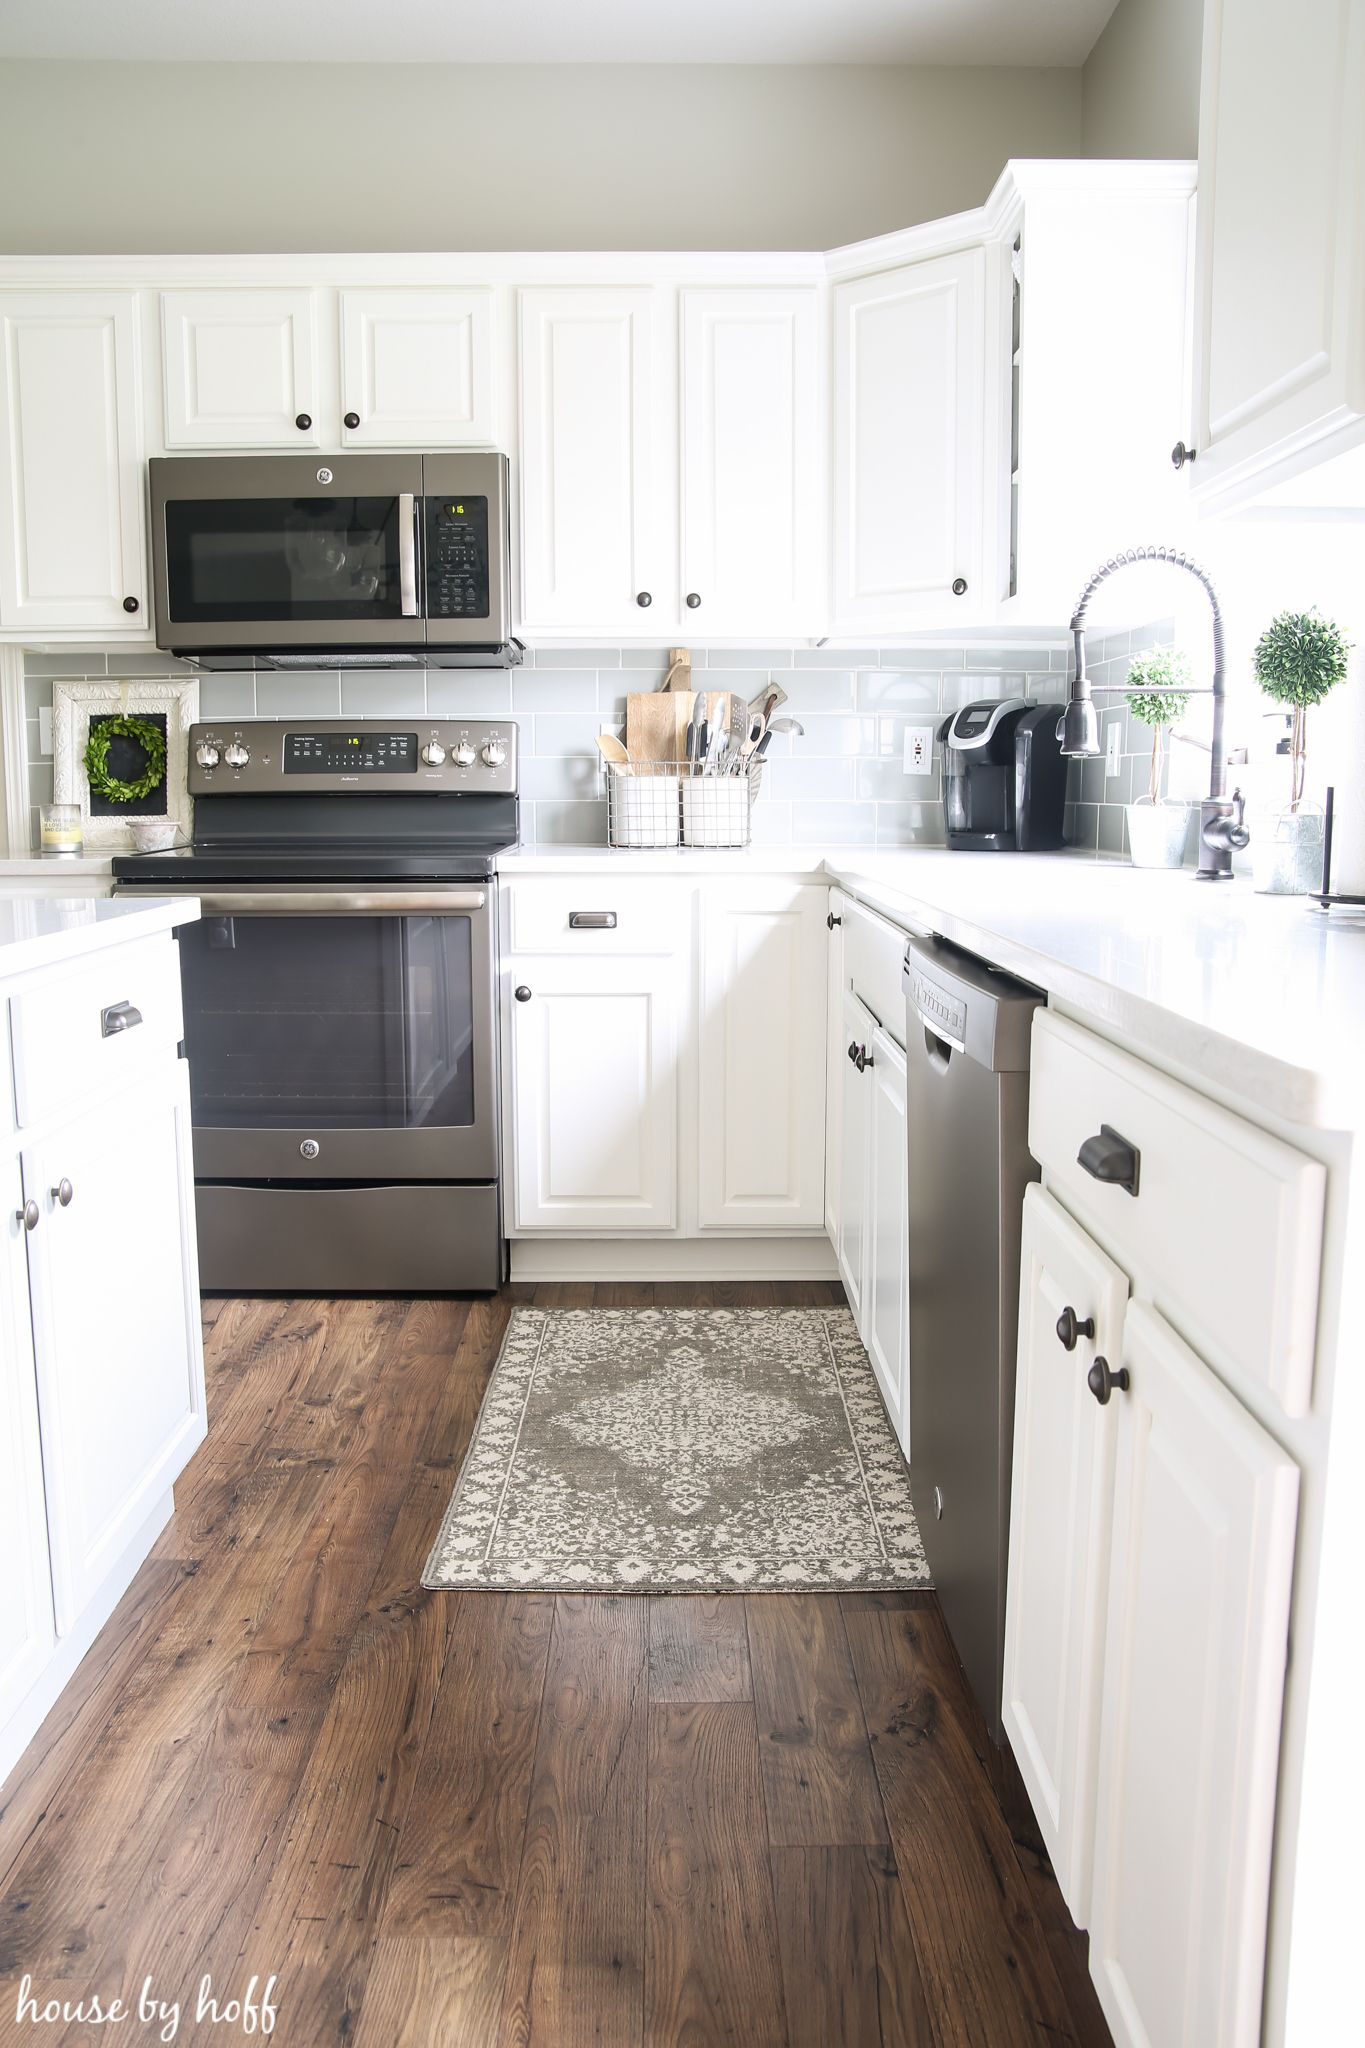 laminate flooring kitchen cabinets how our laminate floors are holding up via house by hoff FRPHSWM